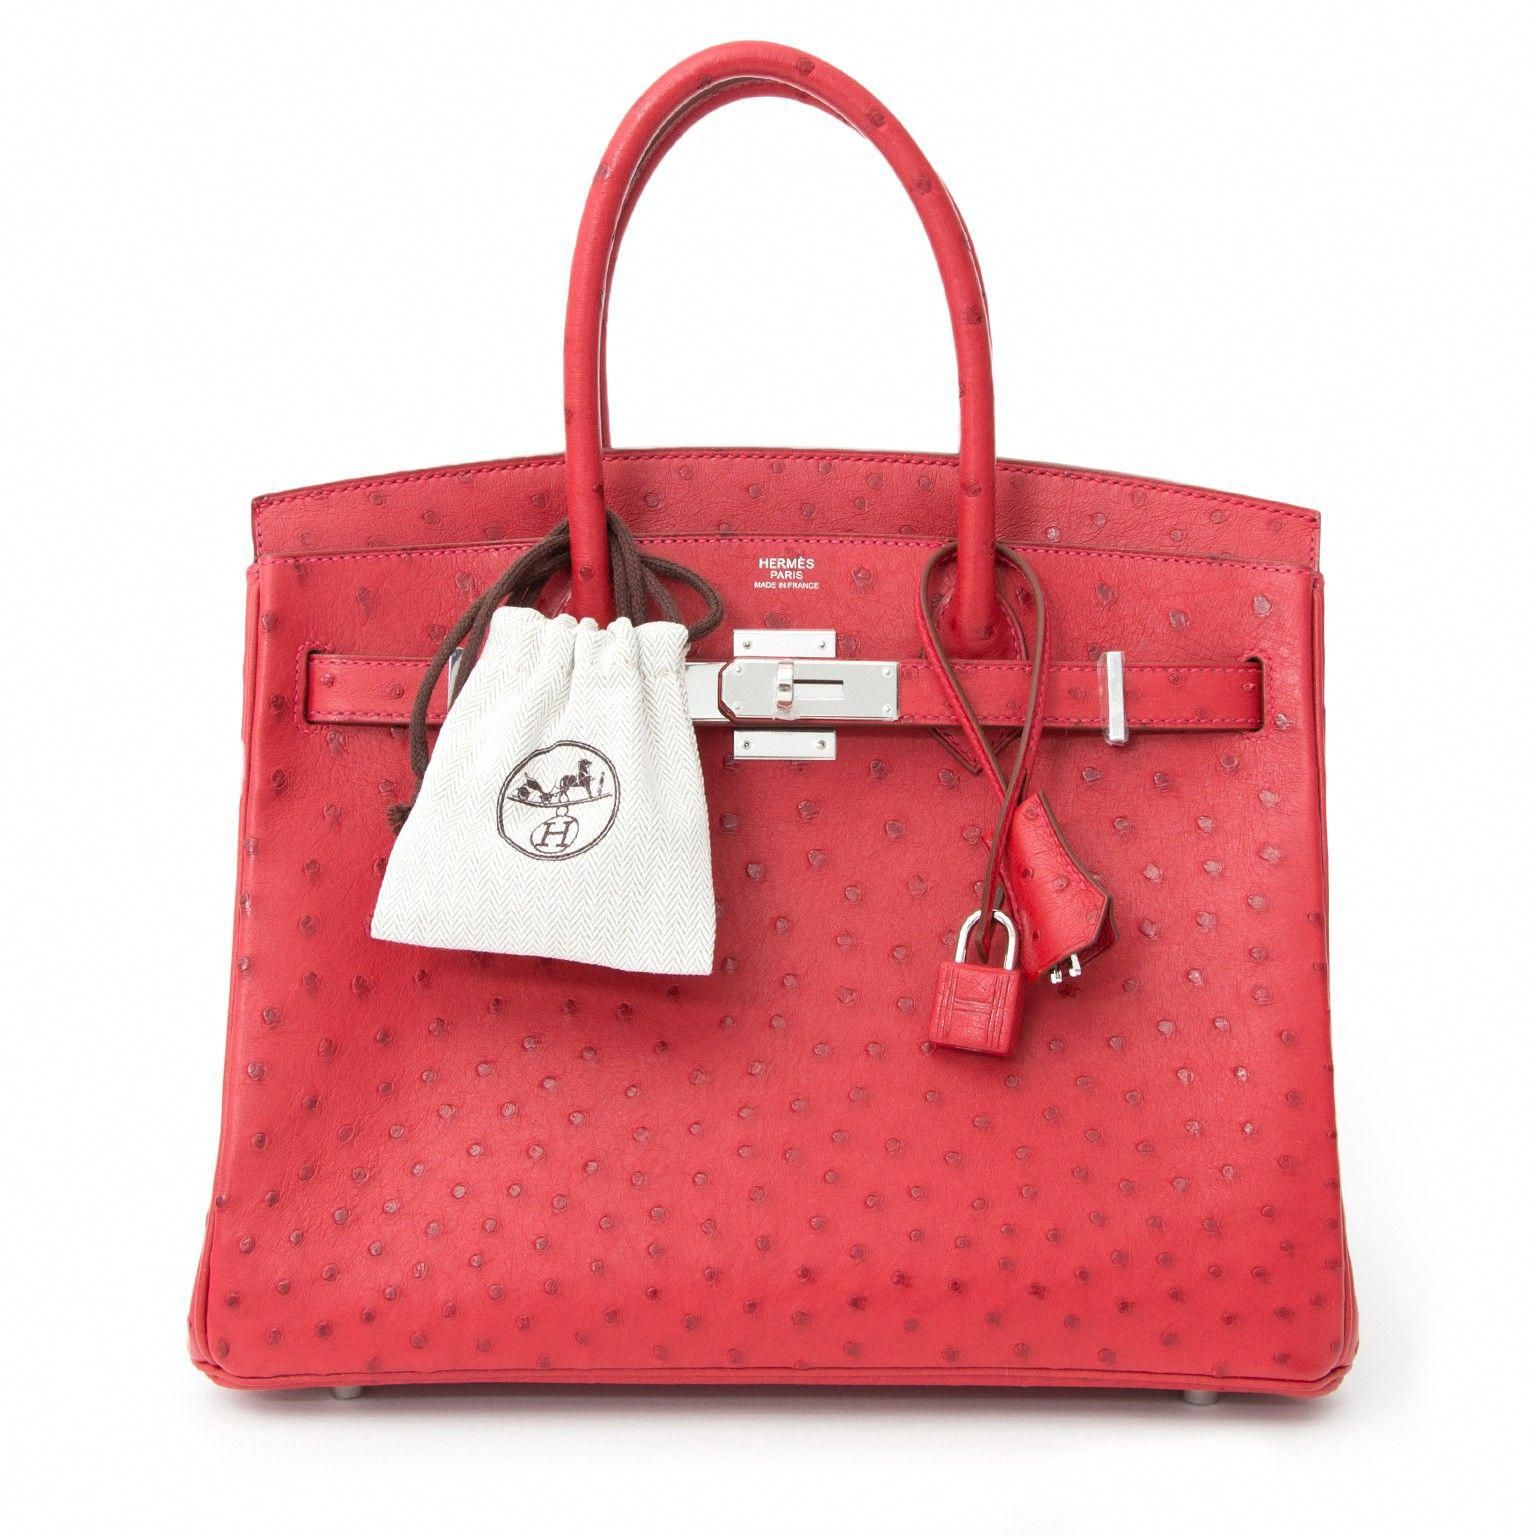 Hermes Ostrich Birkin 30 Rouge Vif Buy Authentic Secondhand Hermes Bags At The Right Price At Labellov Vintage Webshop S Hermes Handbags Birkin Hermes Birkin